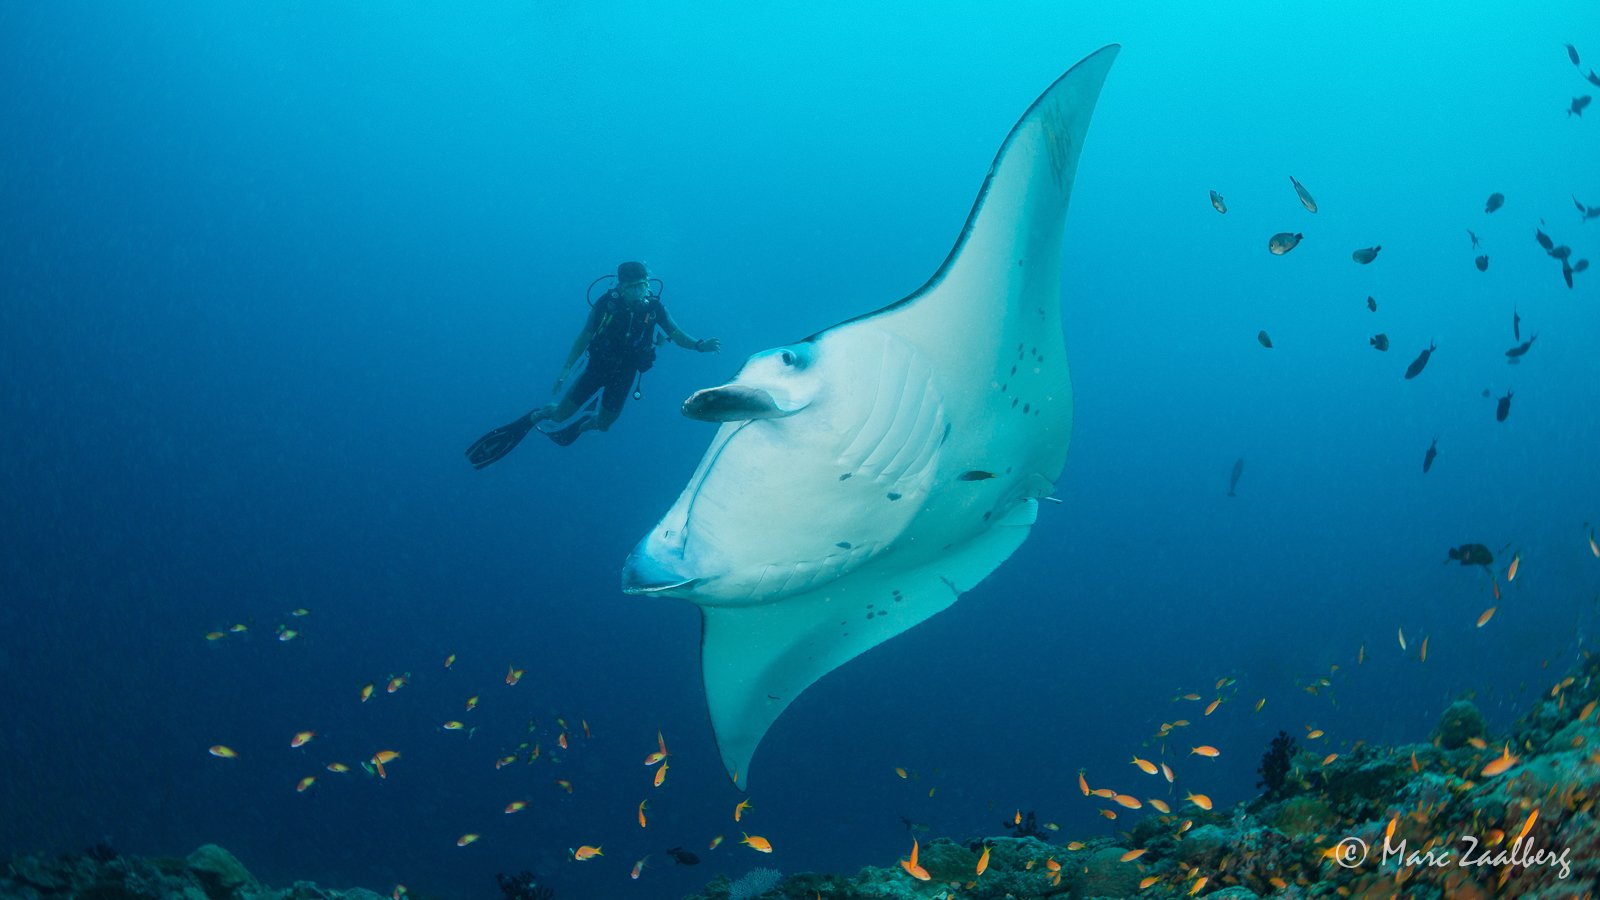 manta encounter in June